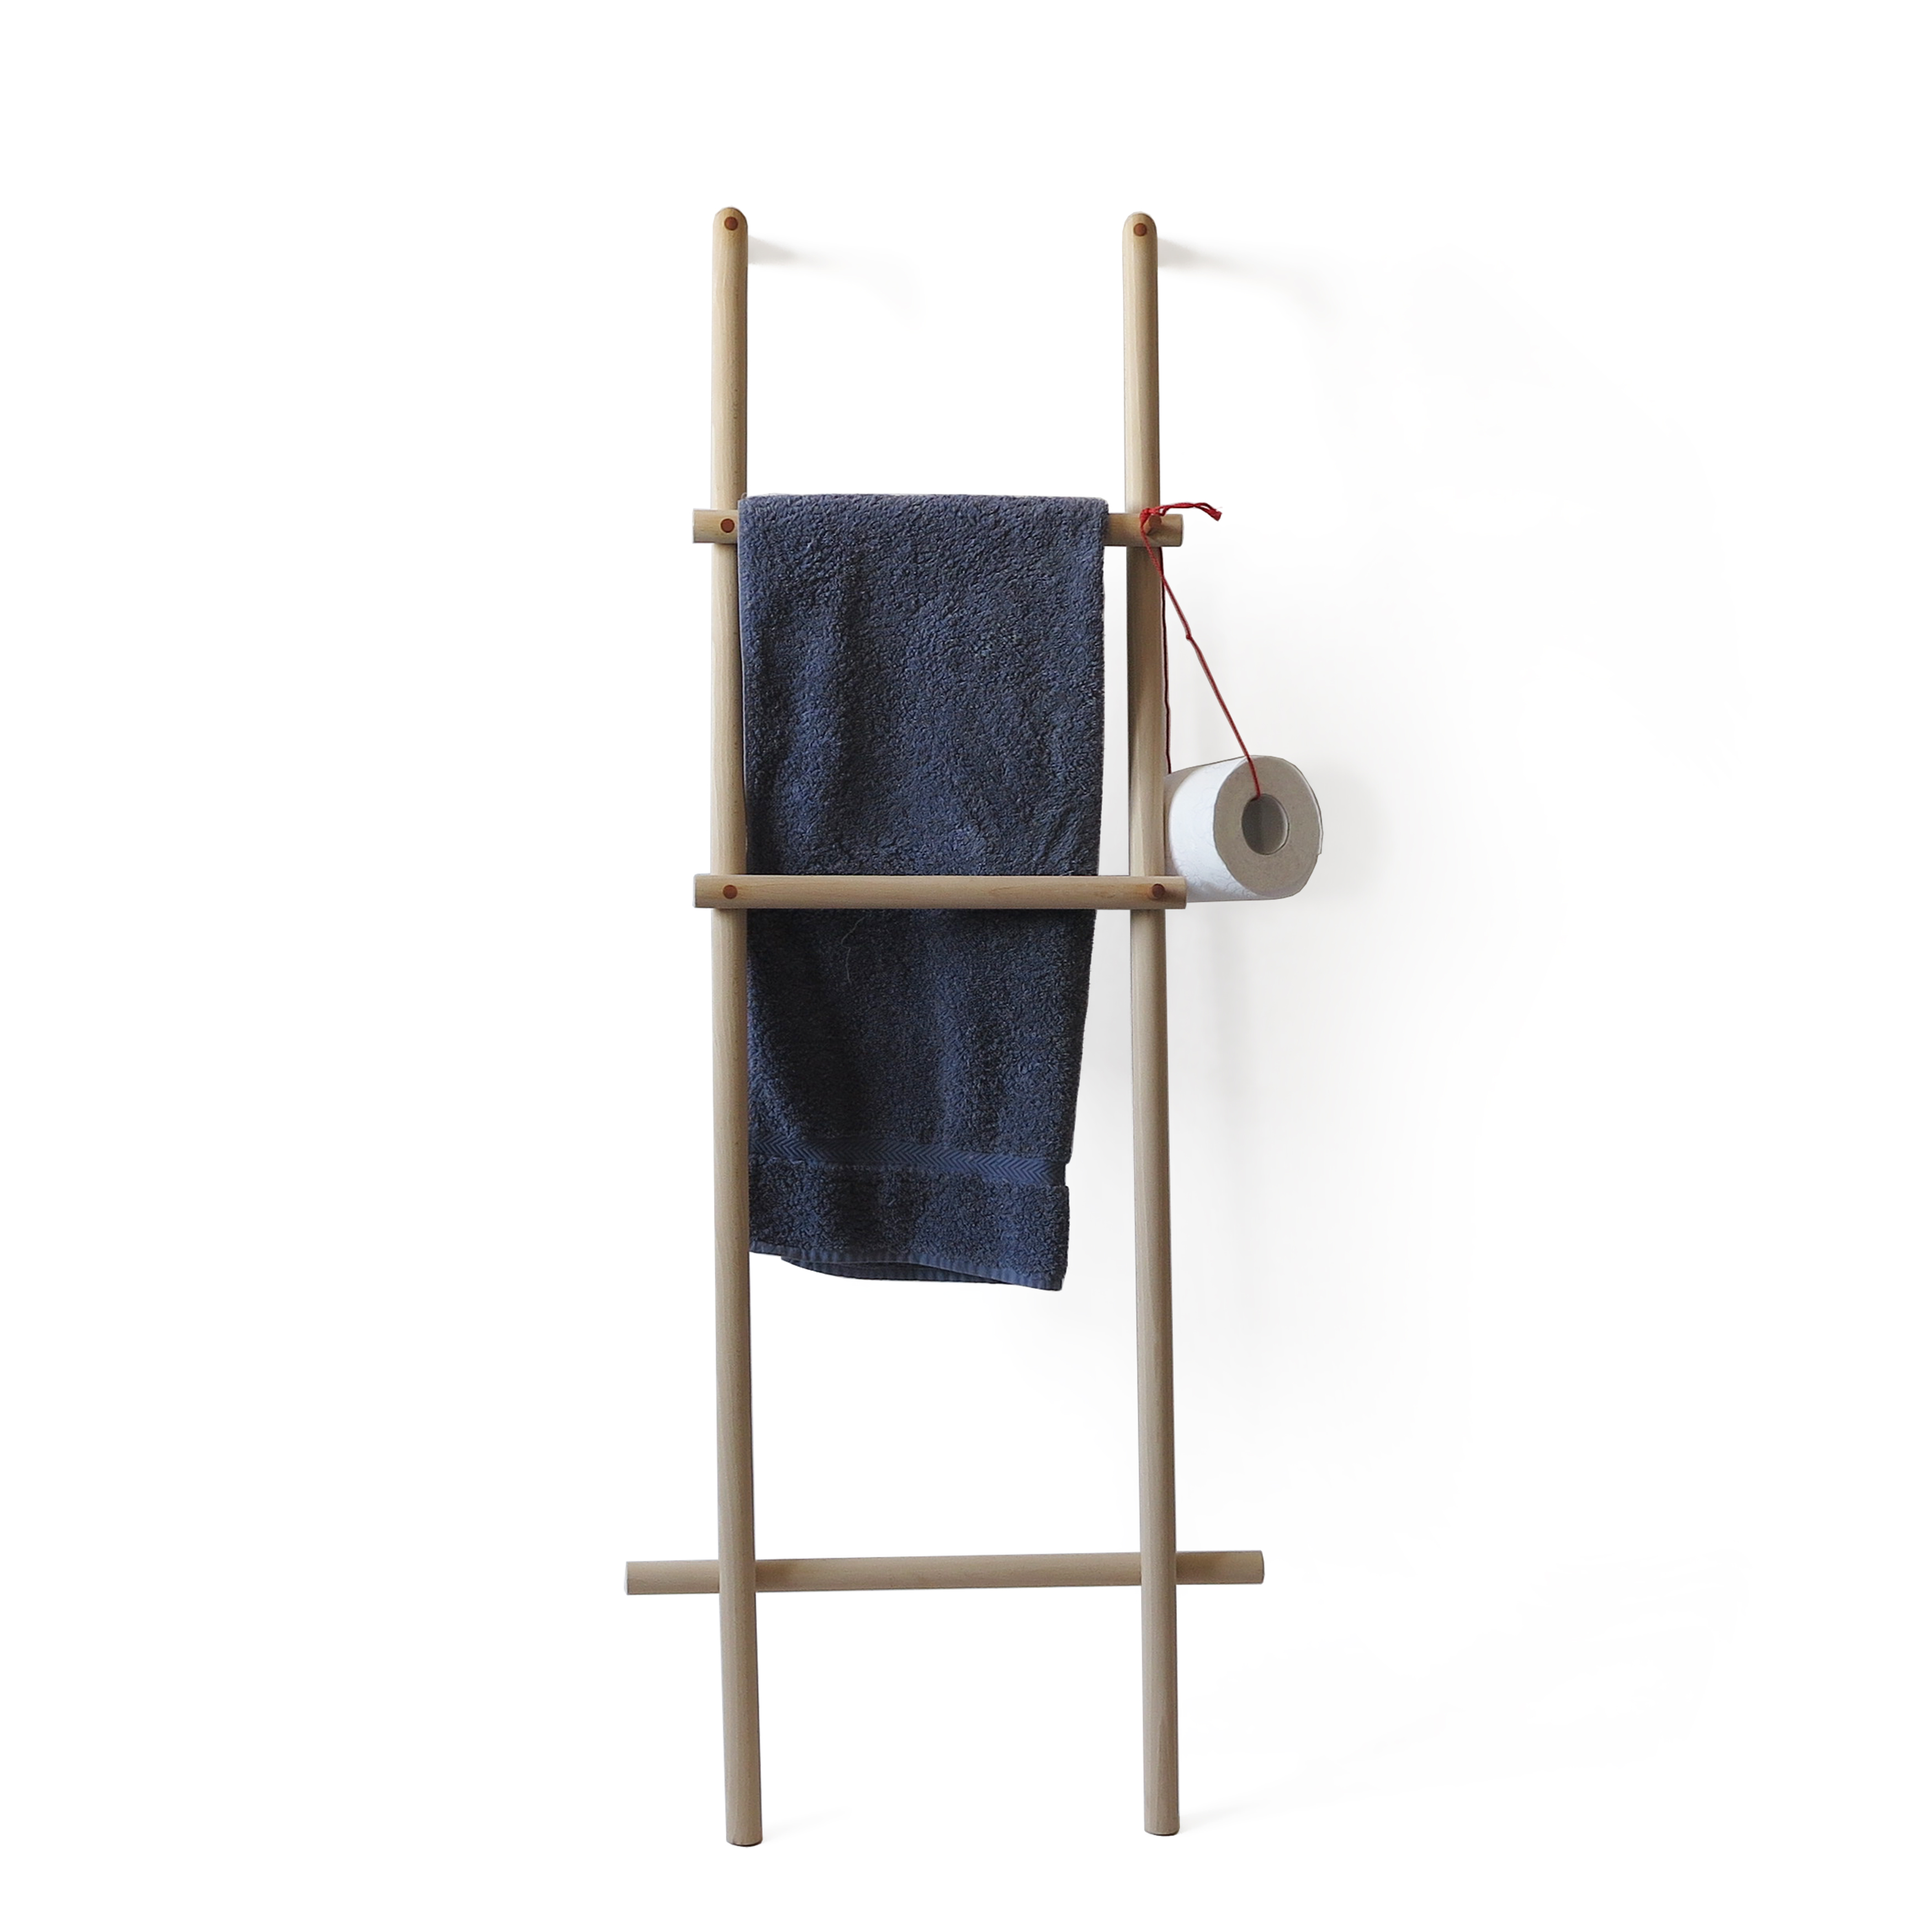 wooden ladder towel holder on the wall with blue towel